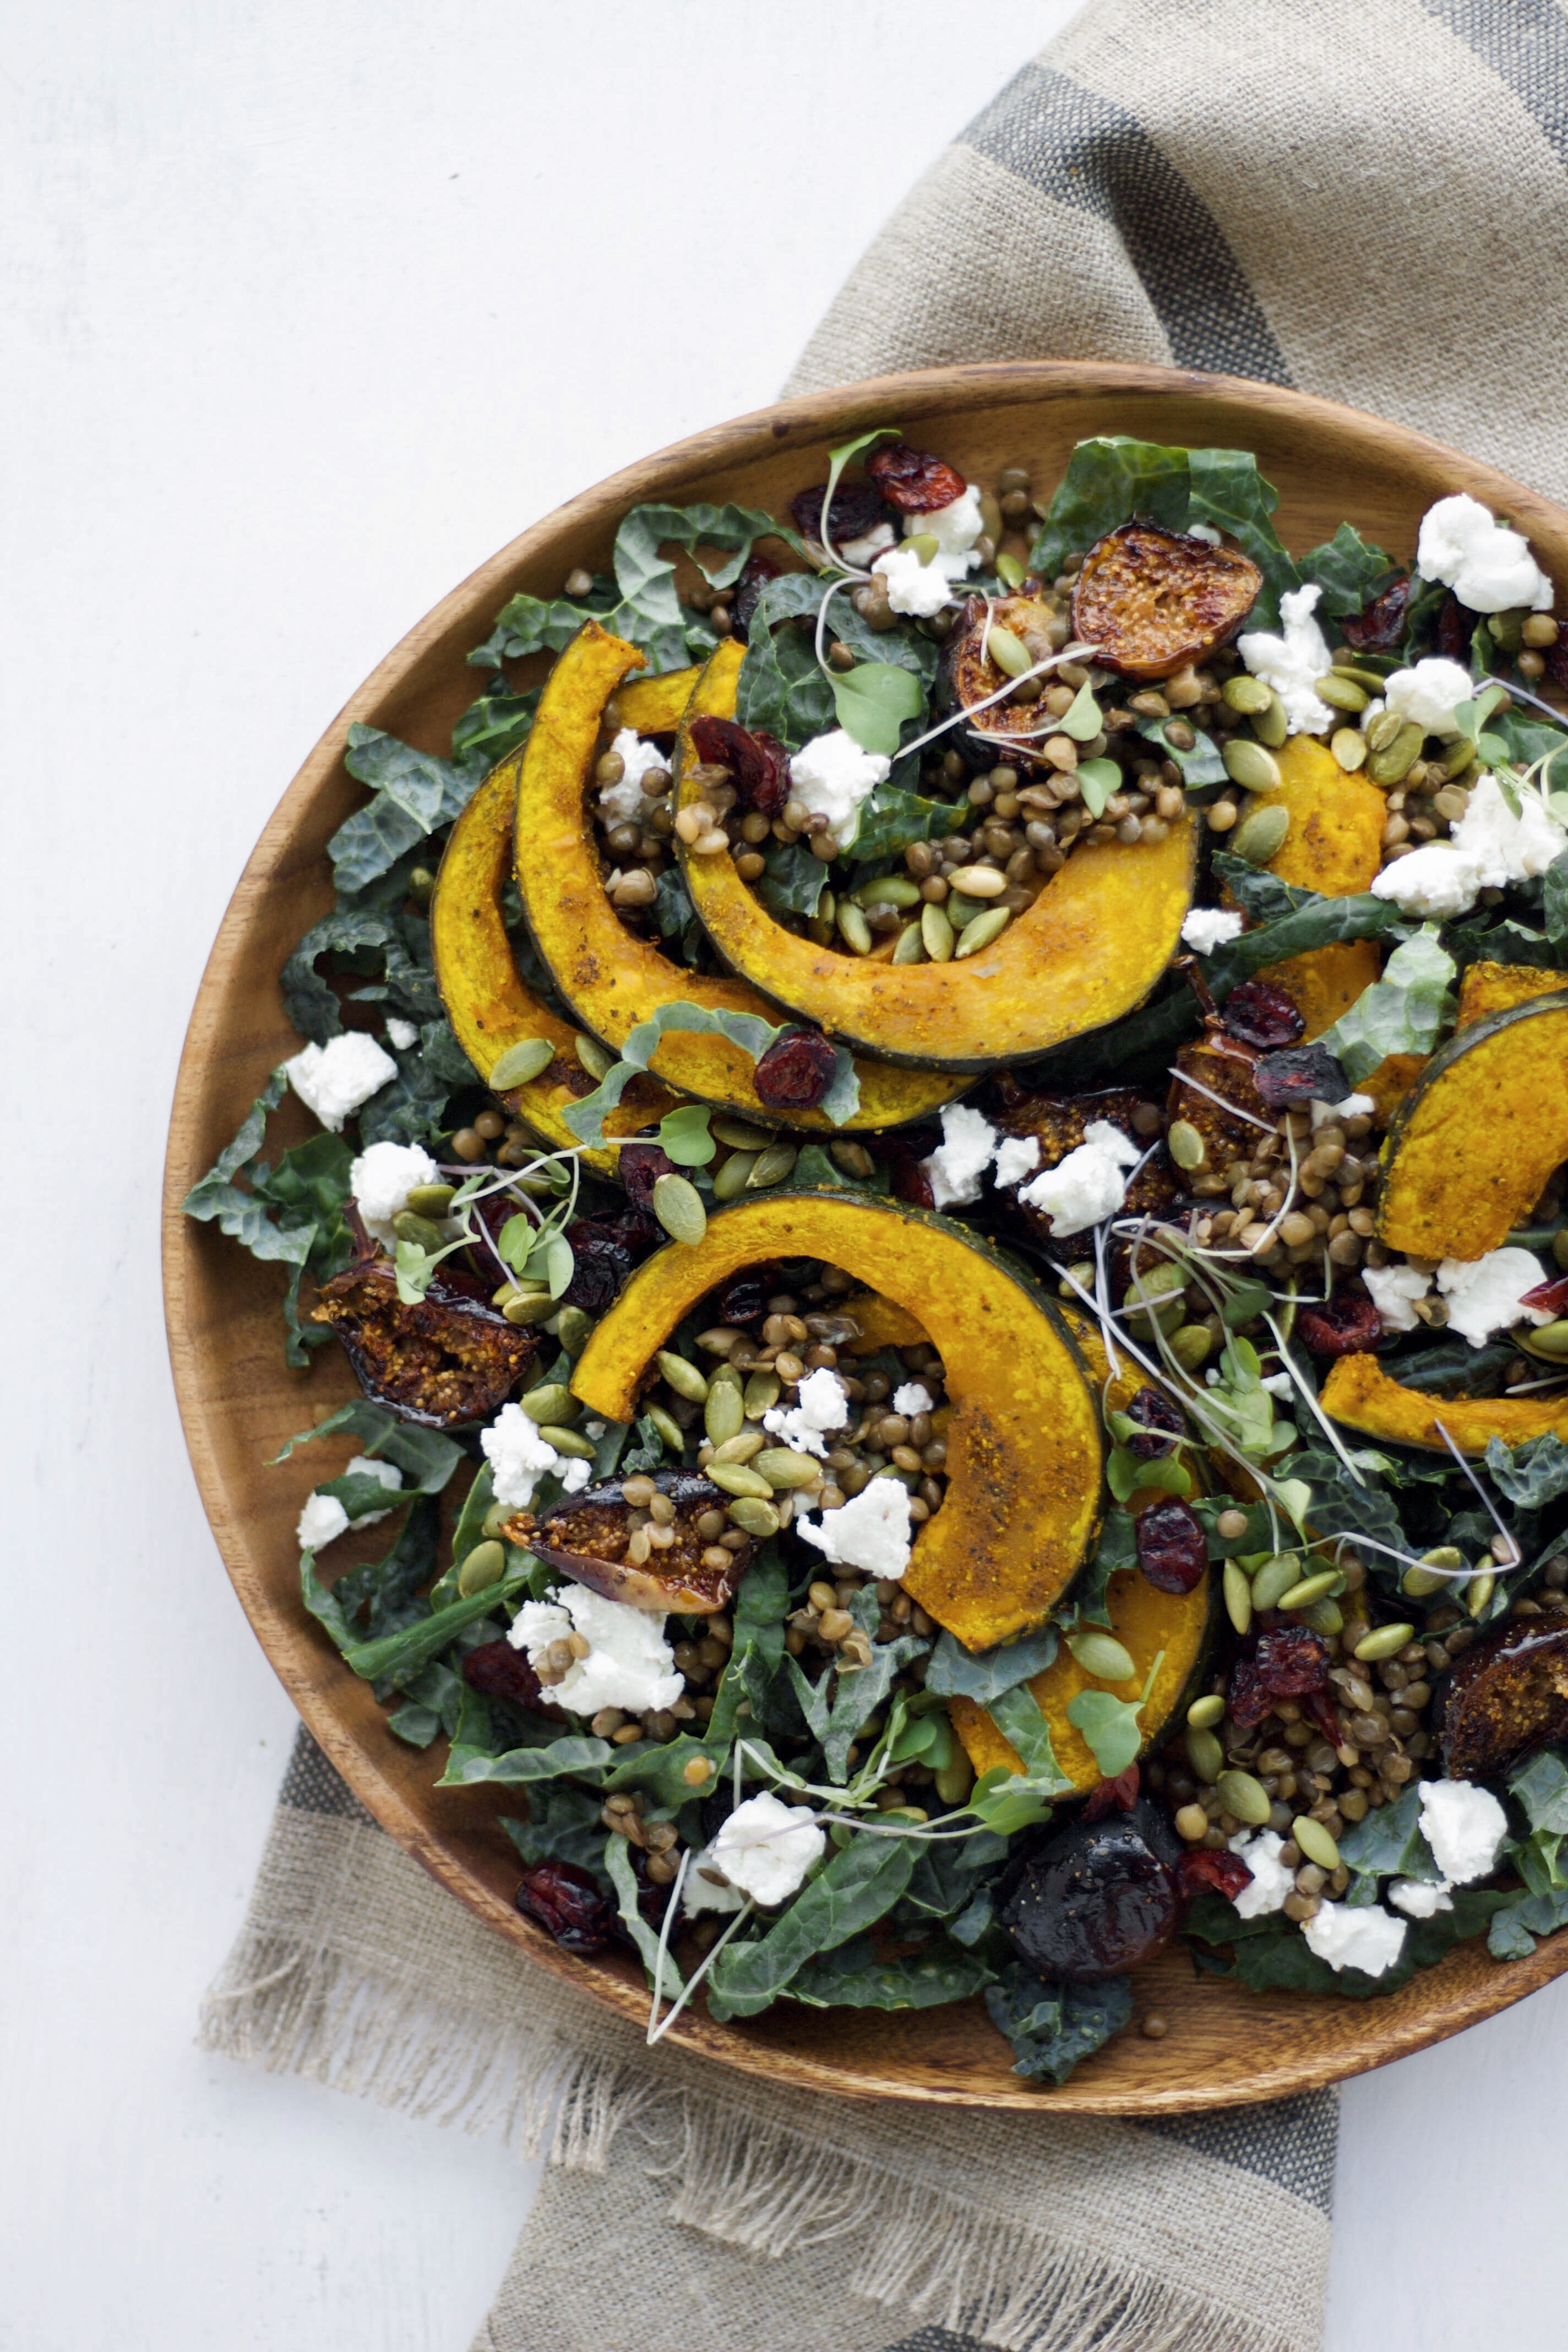 The perfect Thanksgiving side dish - a Turmeric Roasted Kabocha Squash salad | This Brown Kitchen